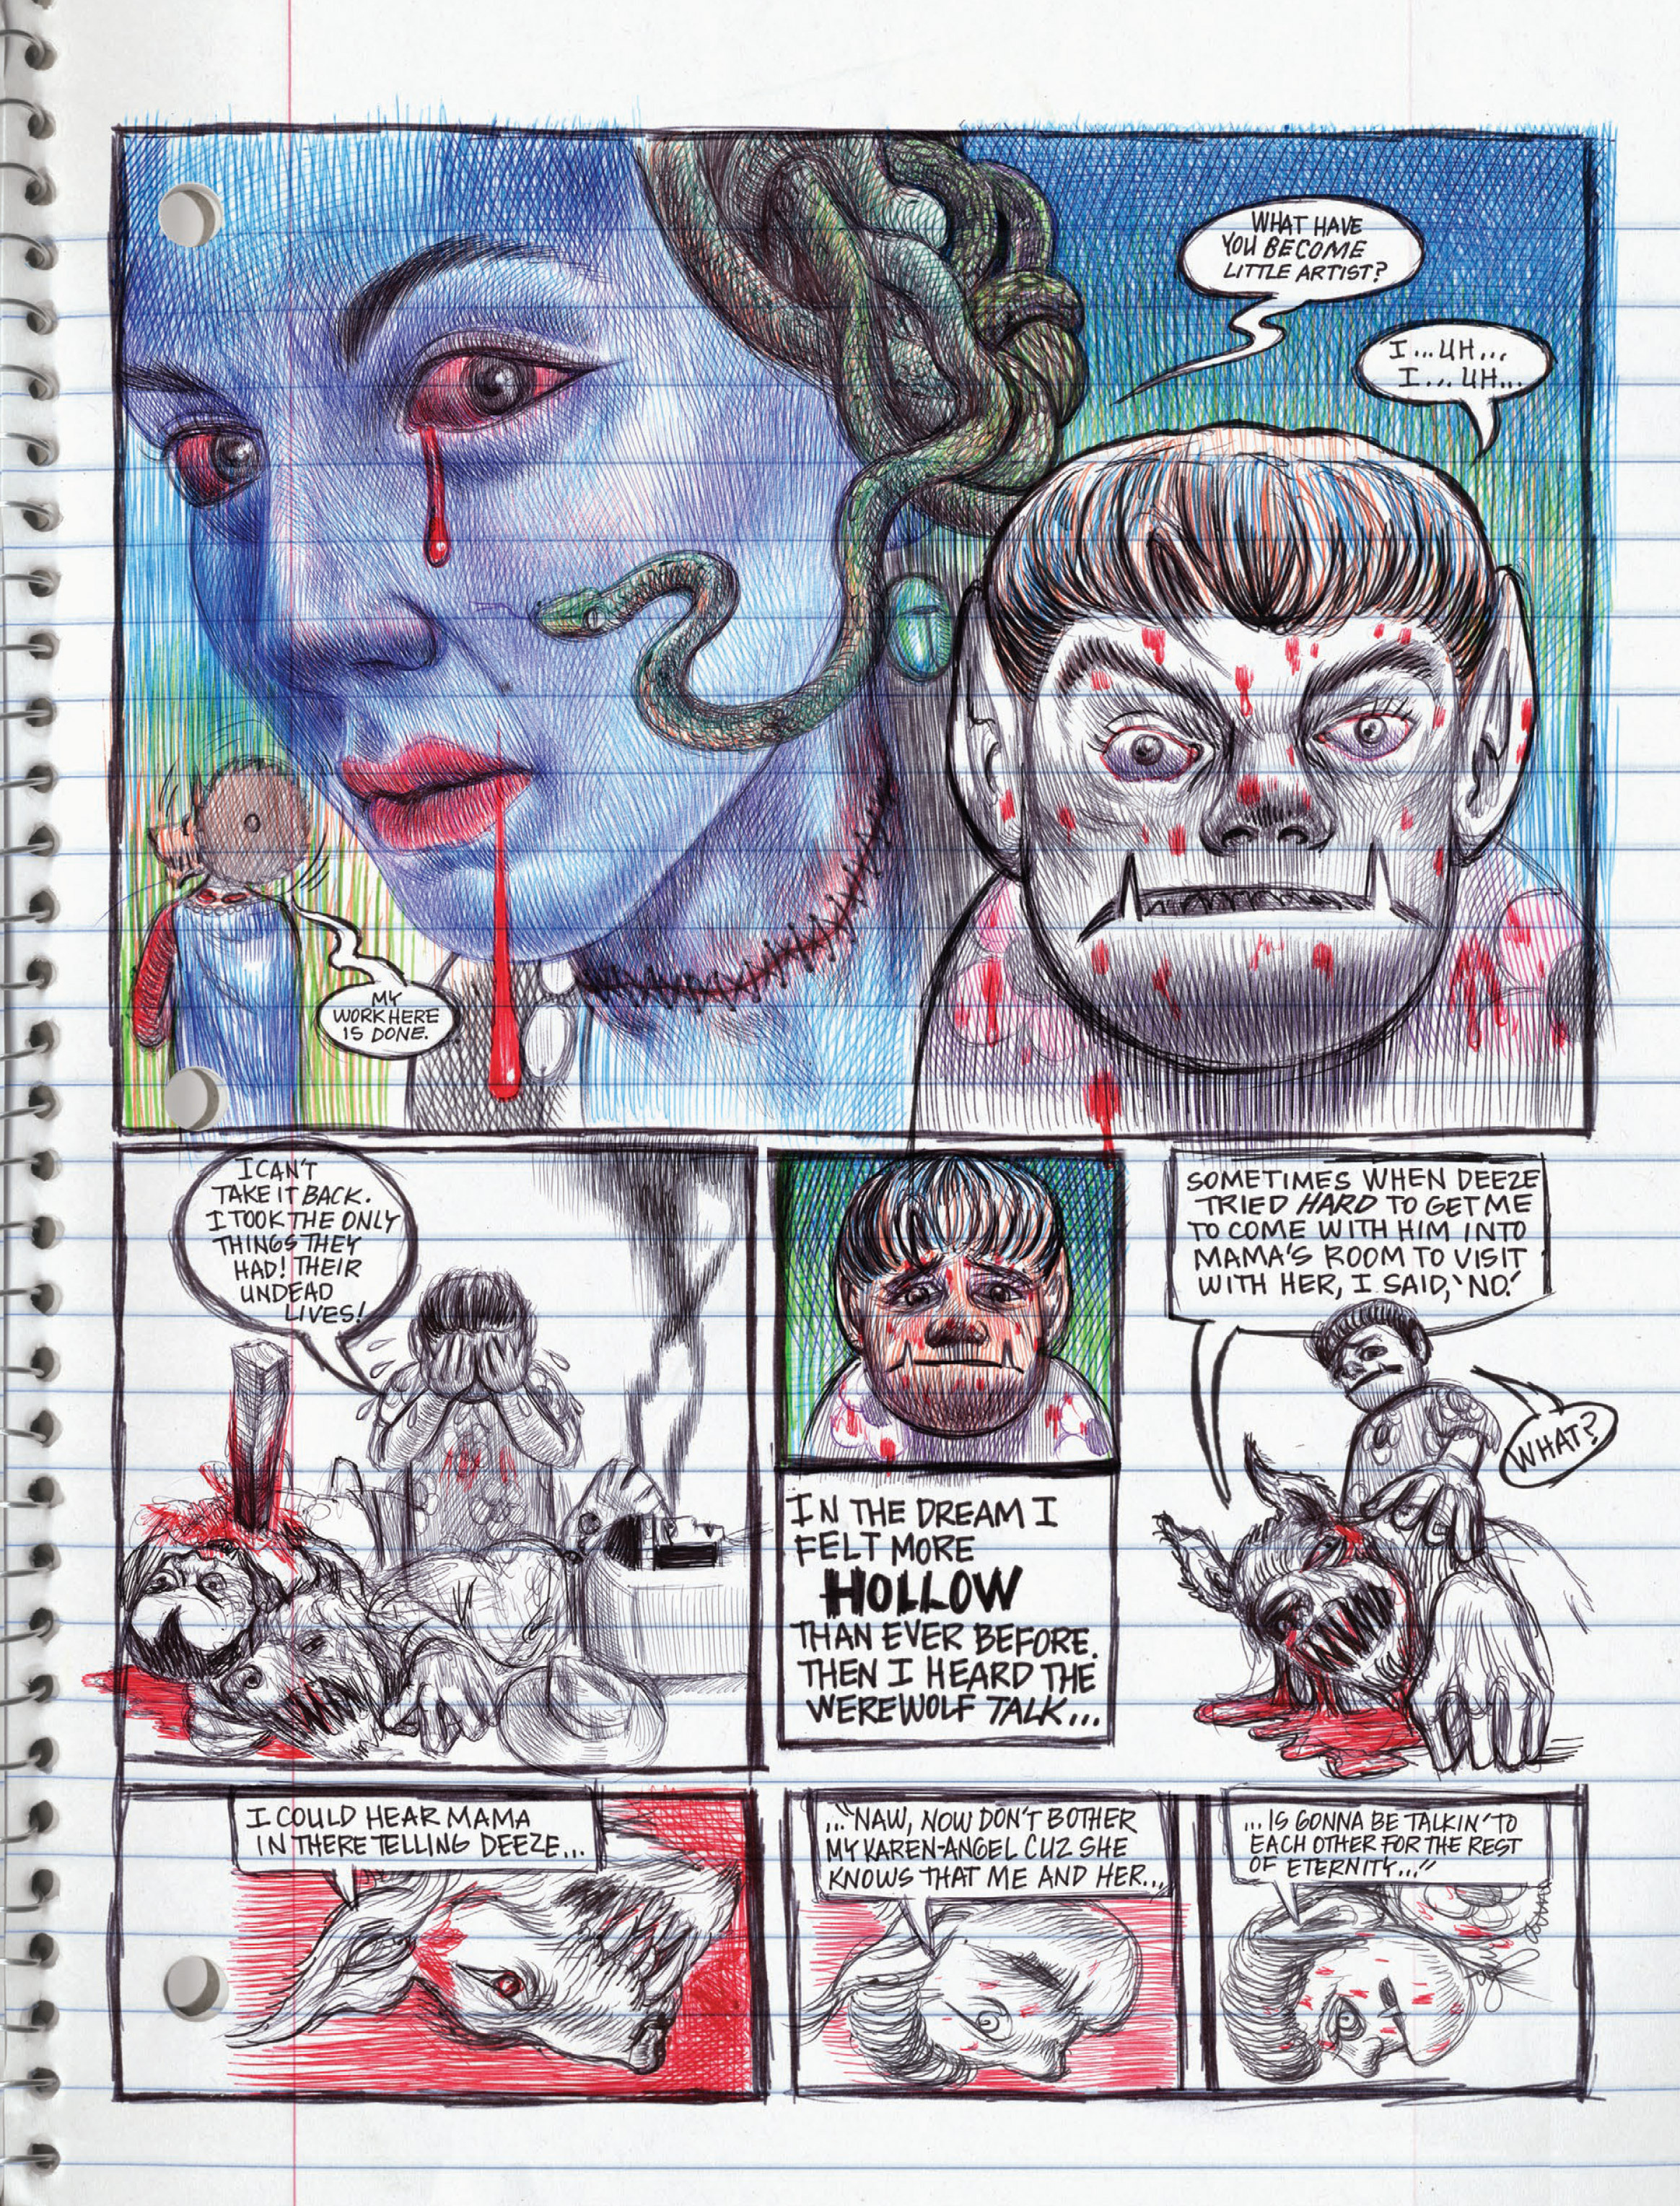 Read online My Favorite Thing is Monsters comic -  Issue #1.5 - 191